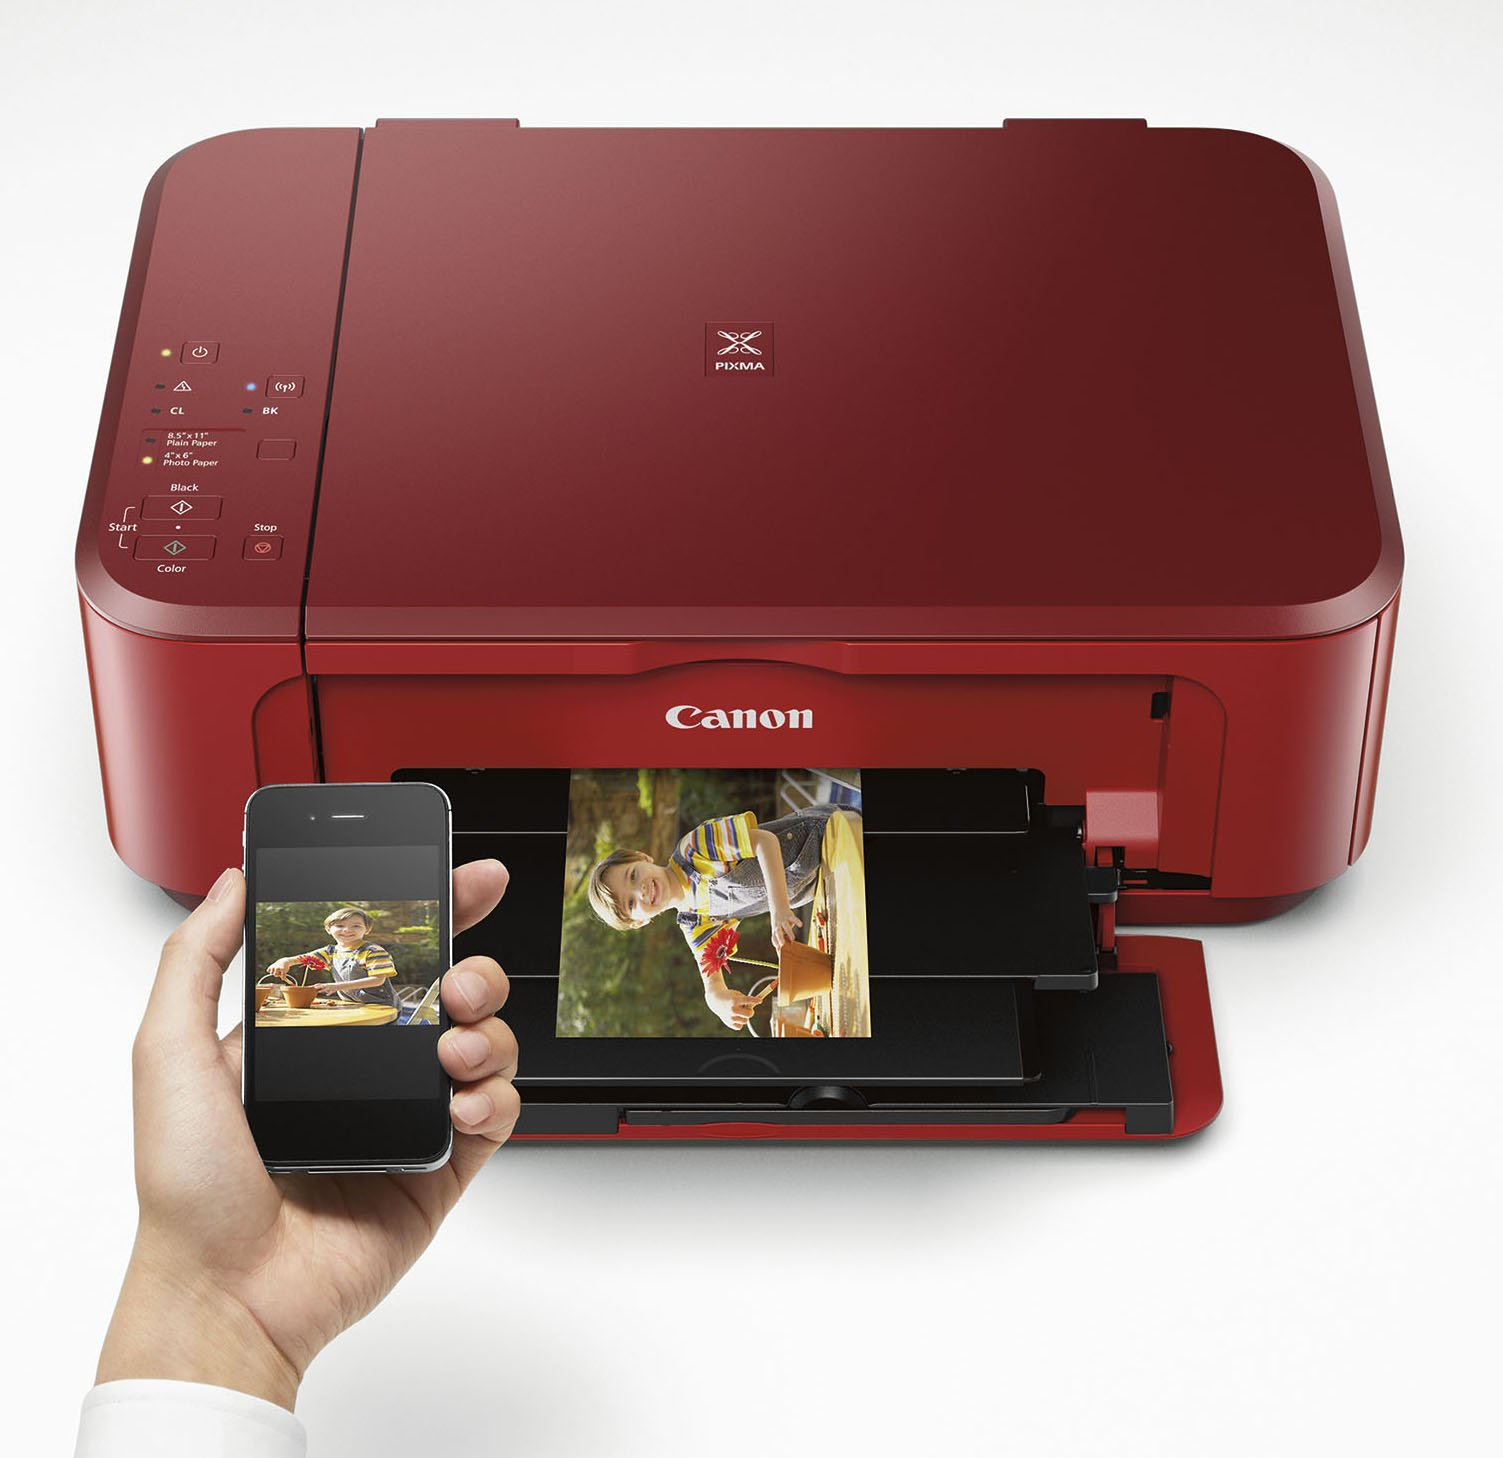 Canon PIXMA MG3620 Wireless All-In-One Color Inkjet Printer with Mobile and Tablet Printing, Red by Canon (Image #3)